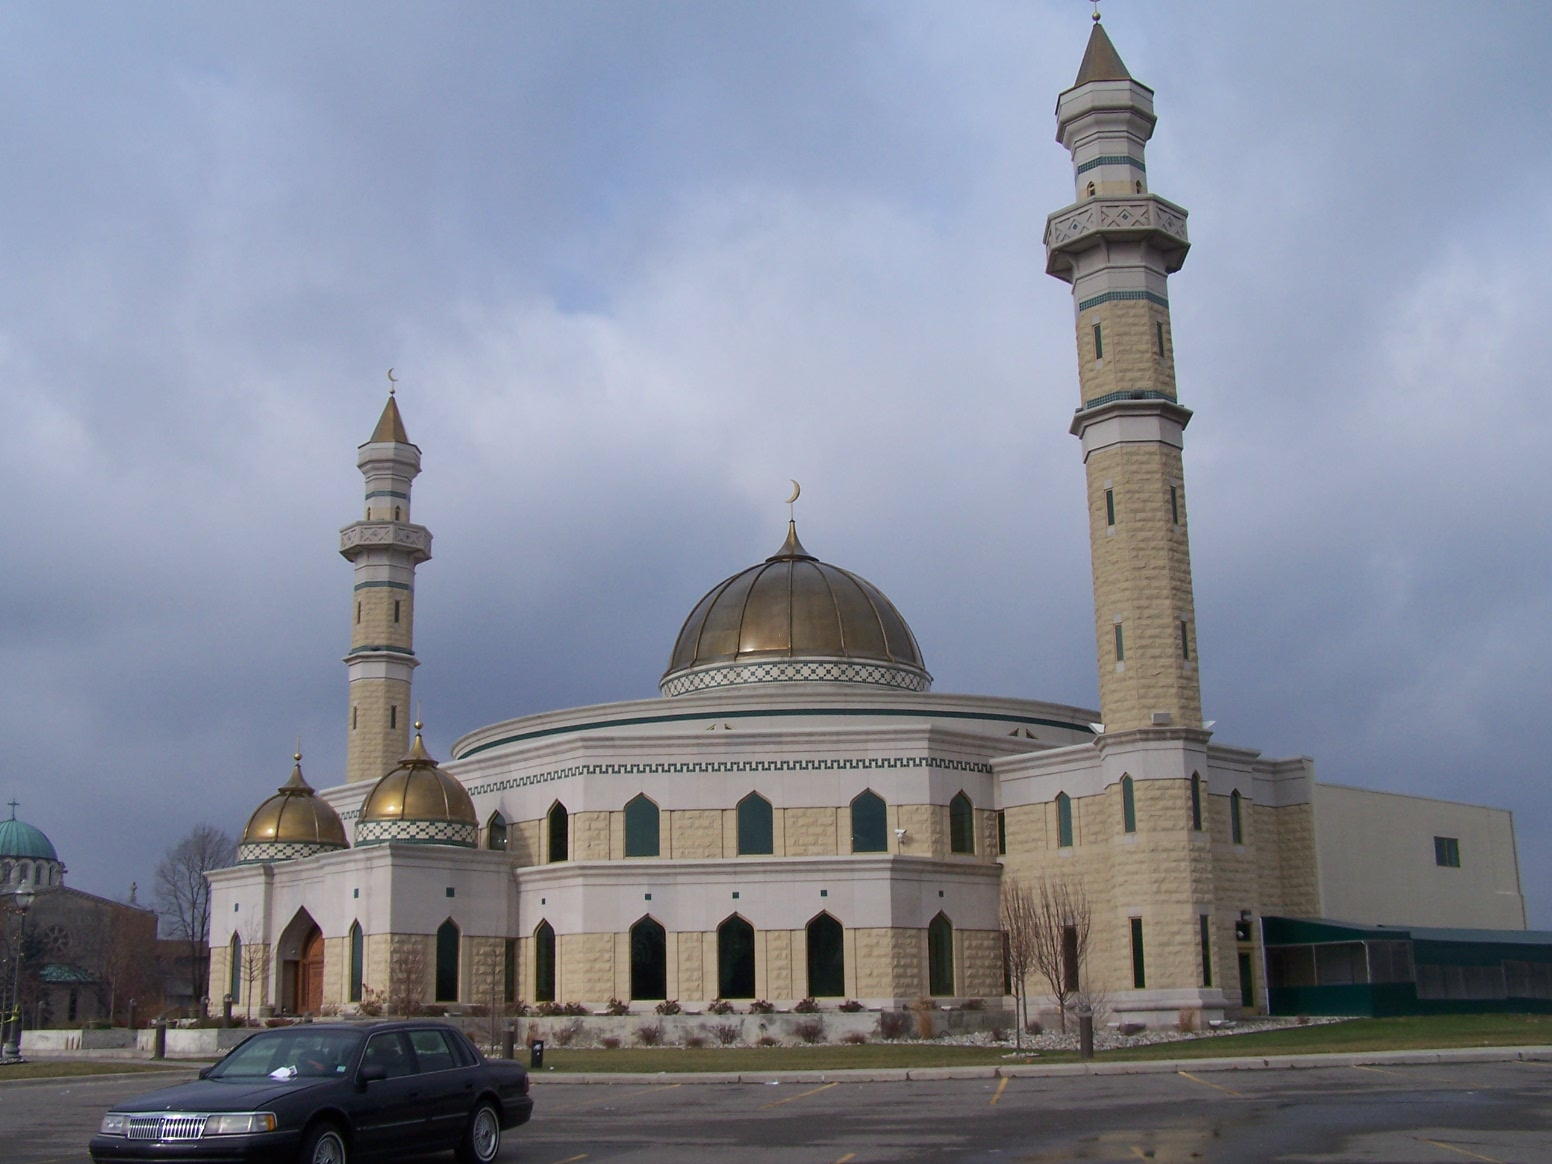 Mosque Shooting Wikipedia: BEAUTIFUL MOSQUES OF THE WORLD: